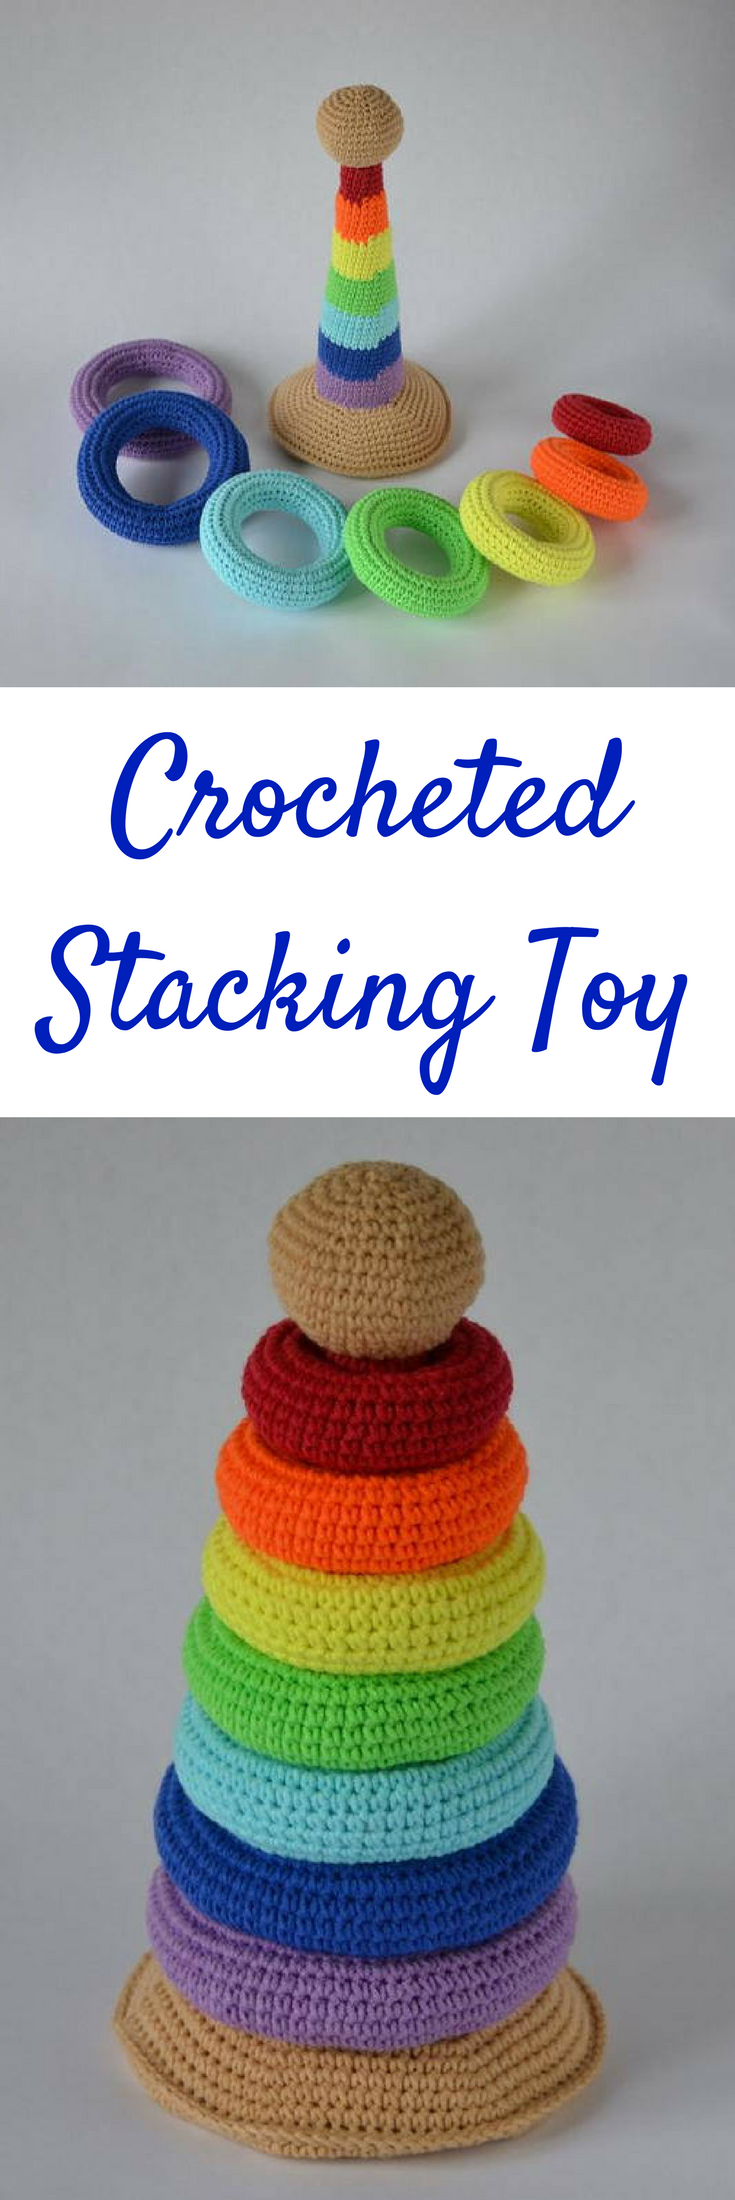 Crochet Stacking Toy for Babies   Sorting Toy   Stacking Toy #ad #baby #babyplay #babyactivities #stacker #toys #crochet #crocheted #crochettoys